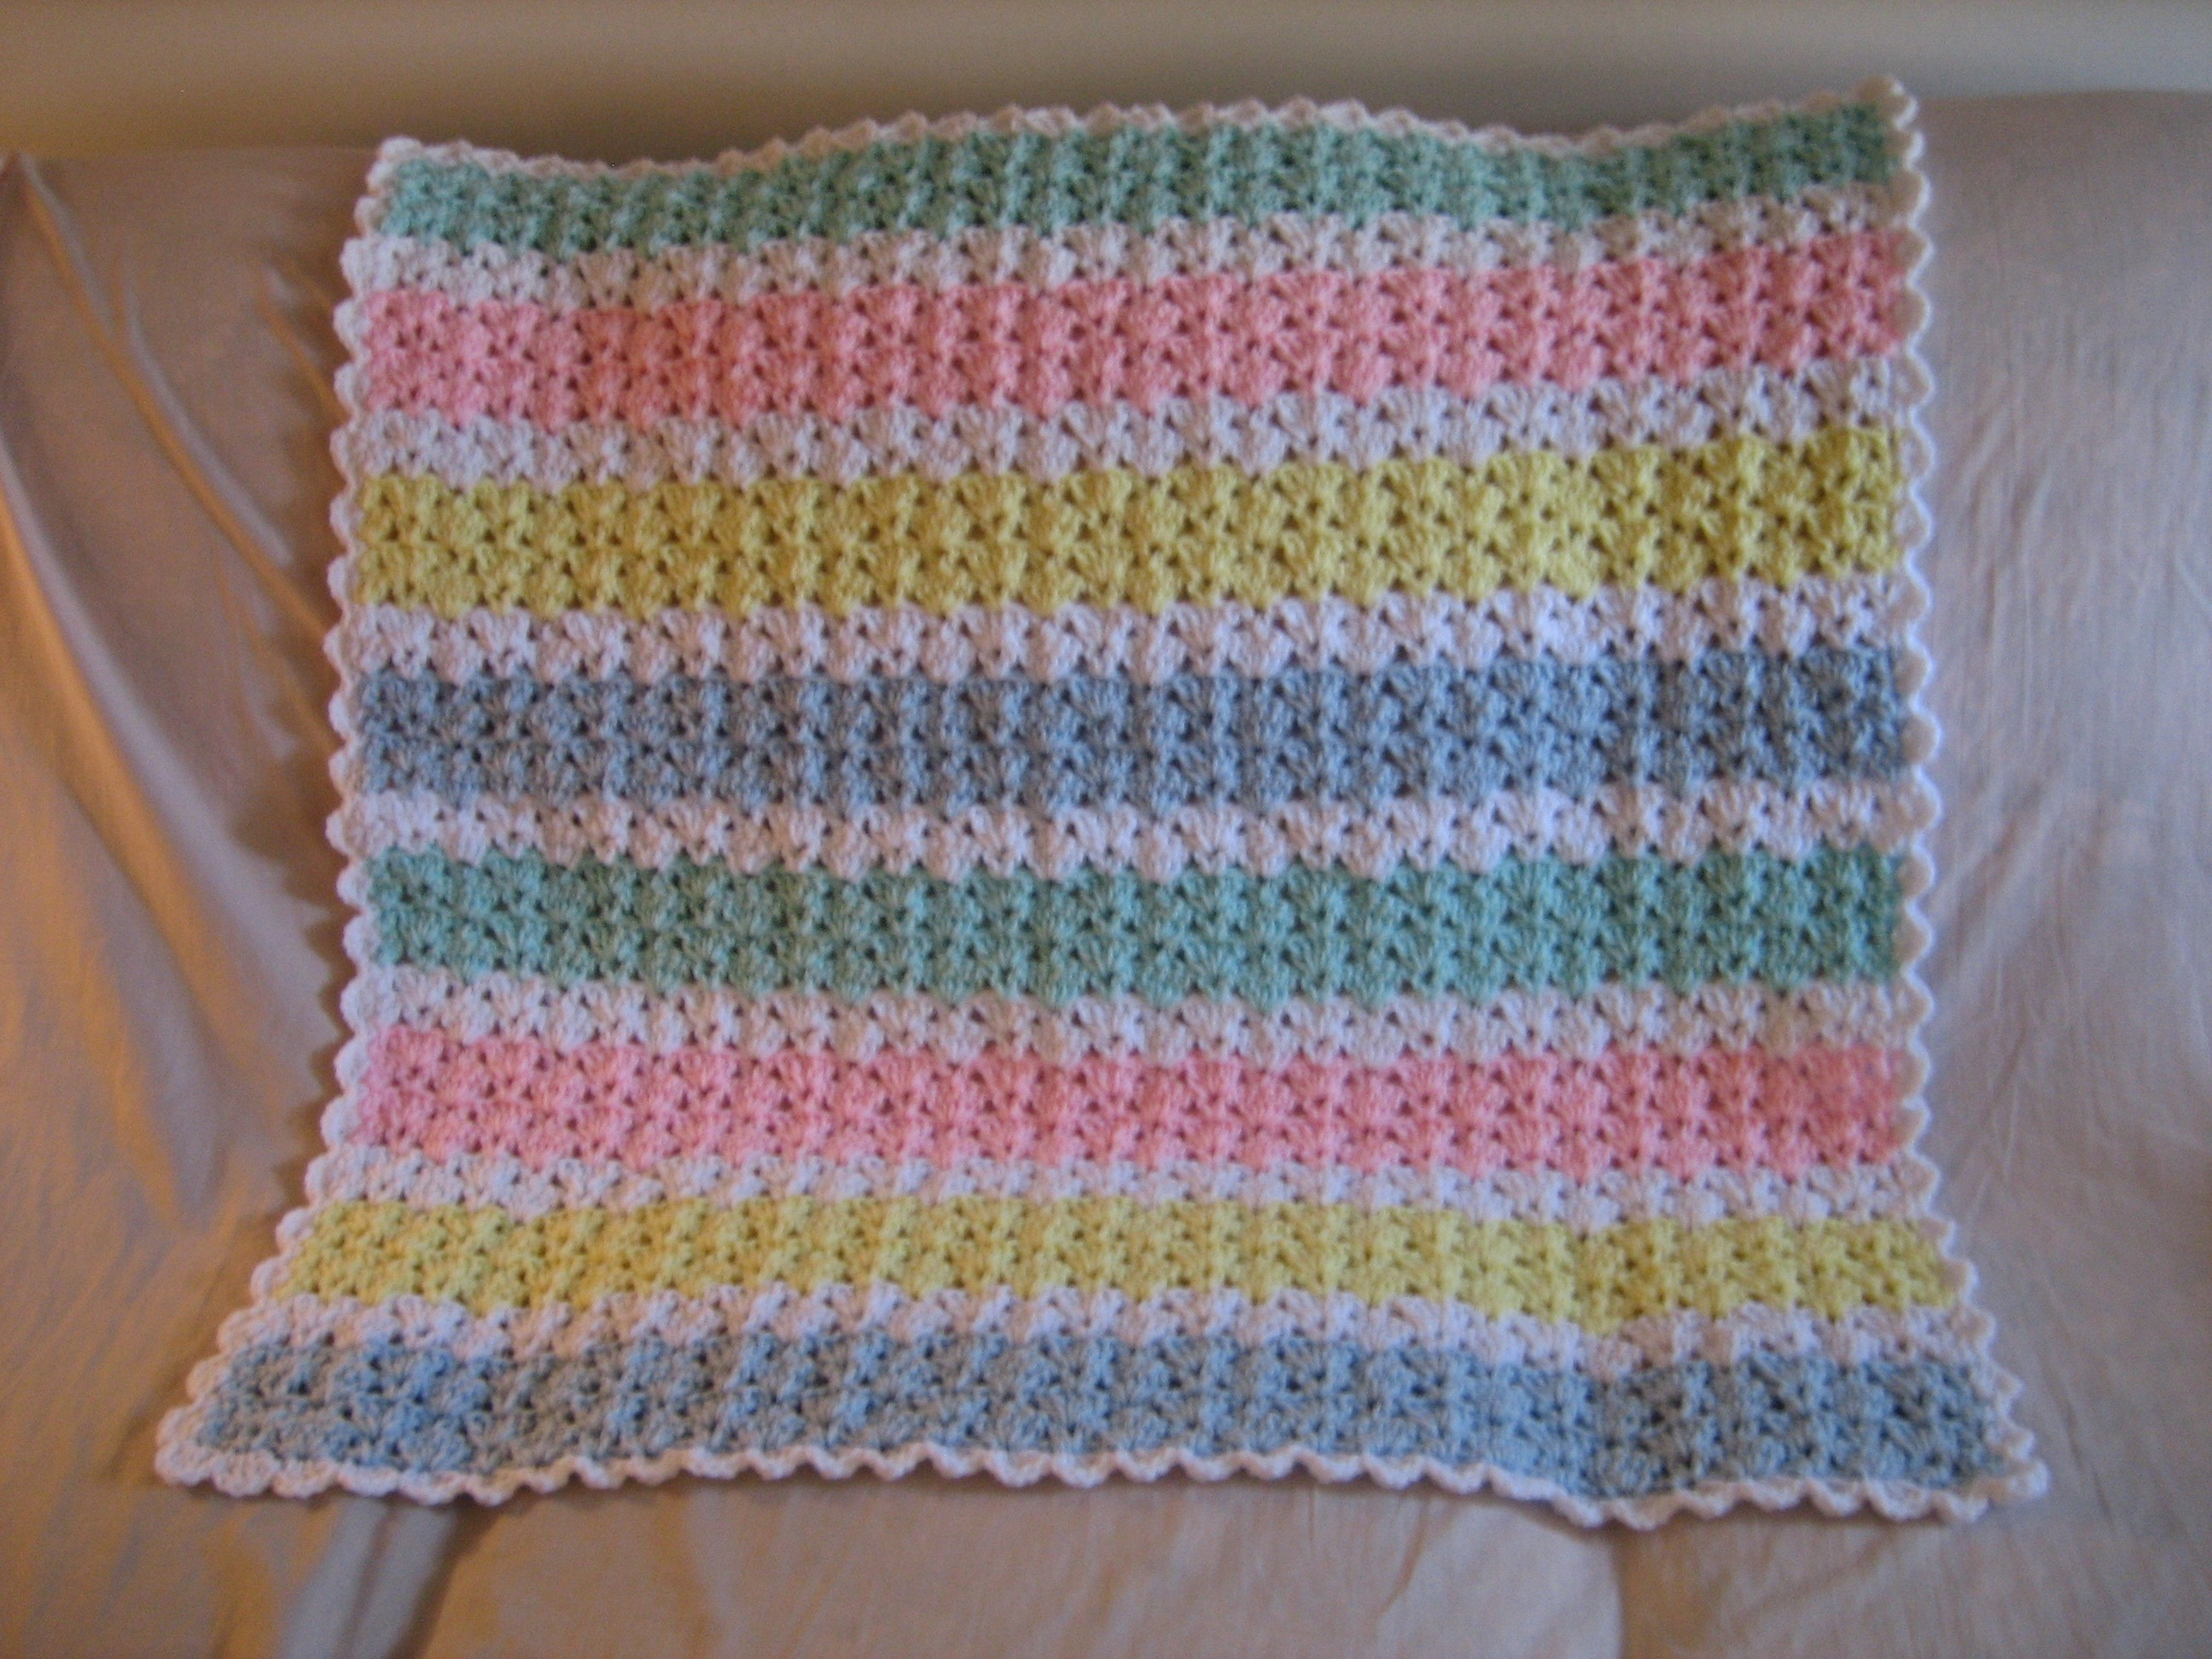 Free Knitting Patterns For Baby Blankets Blankets My Original Patterns Loves Many Cloths